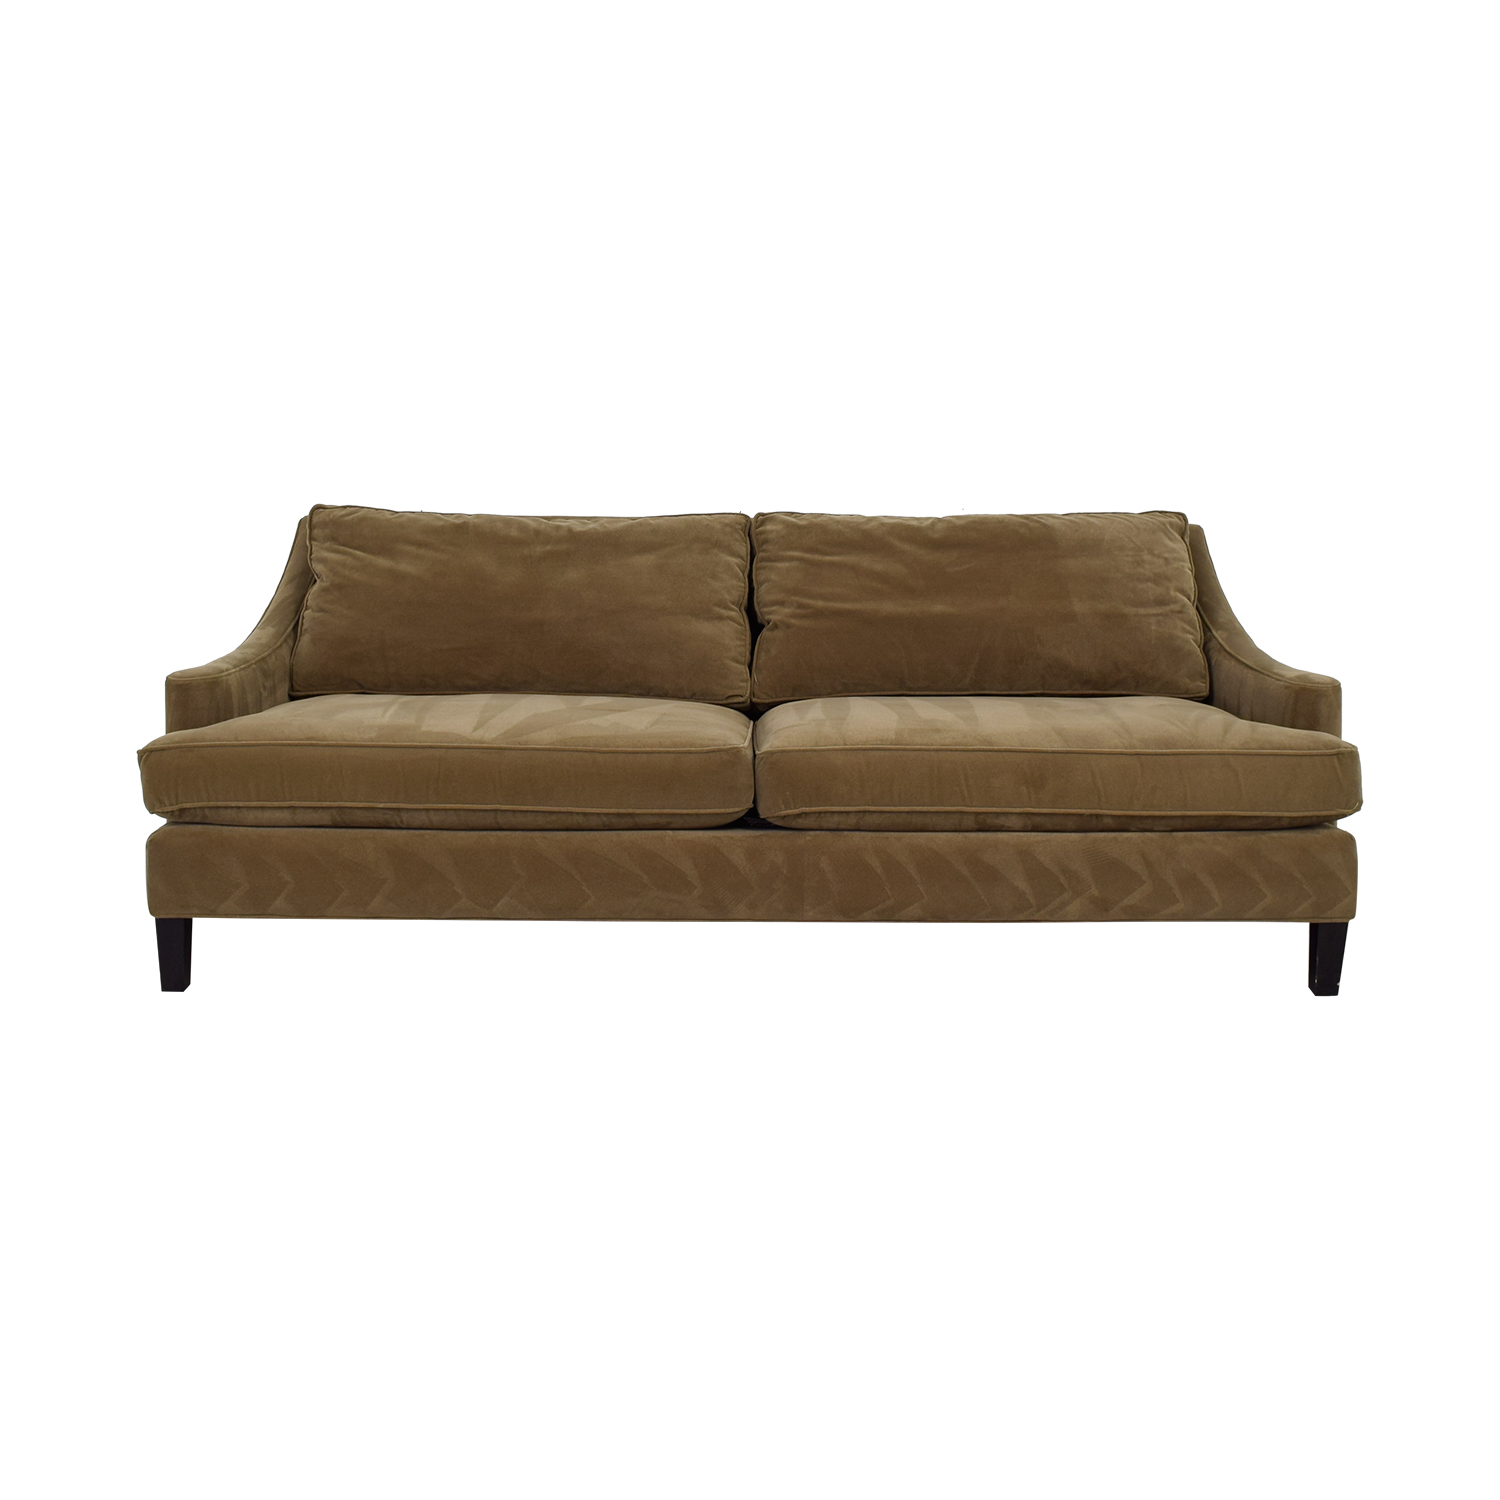 Lillian August Lillian August Nicole Olive Green Two-Cushion Sofa